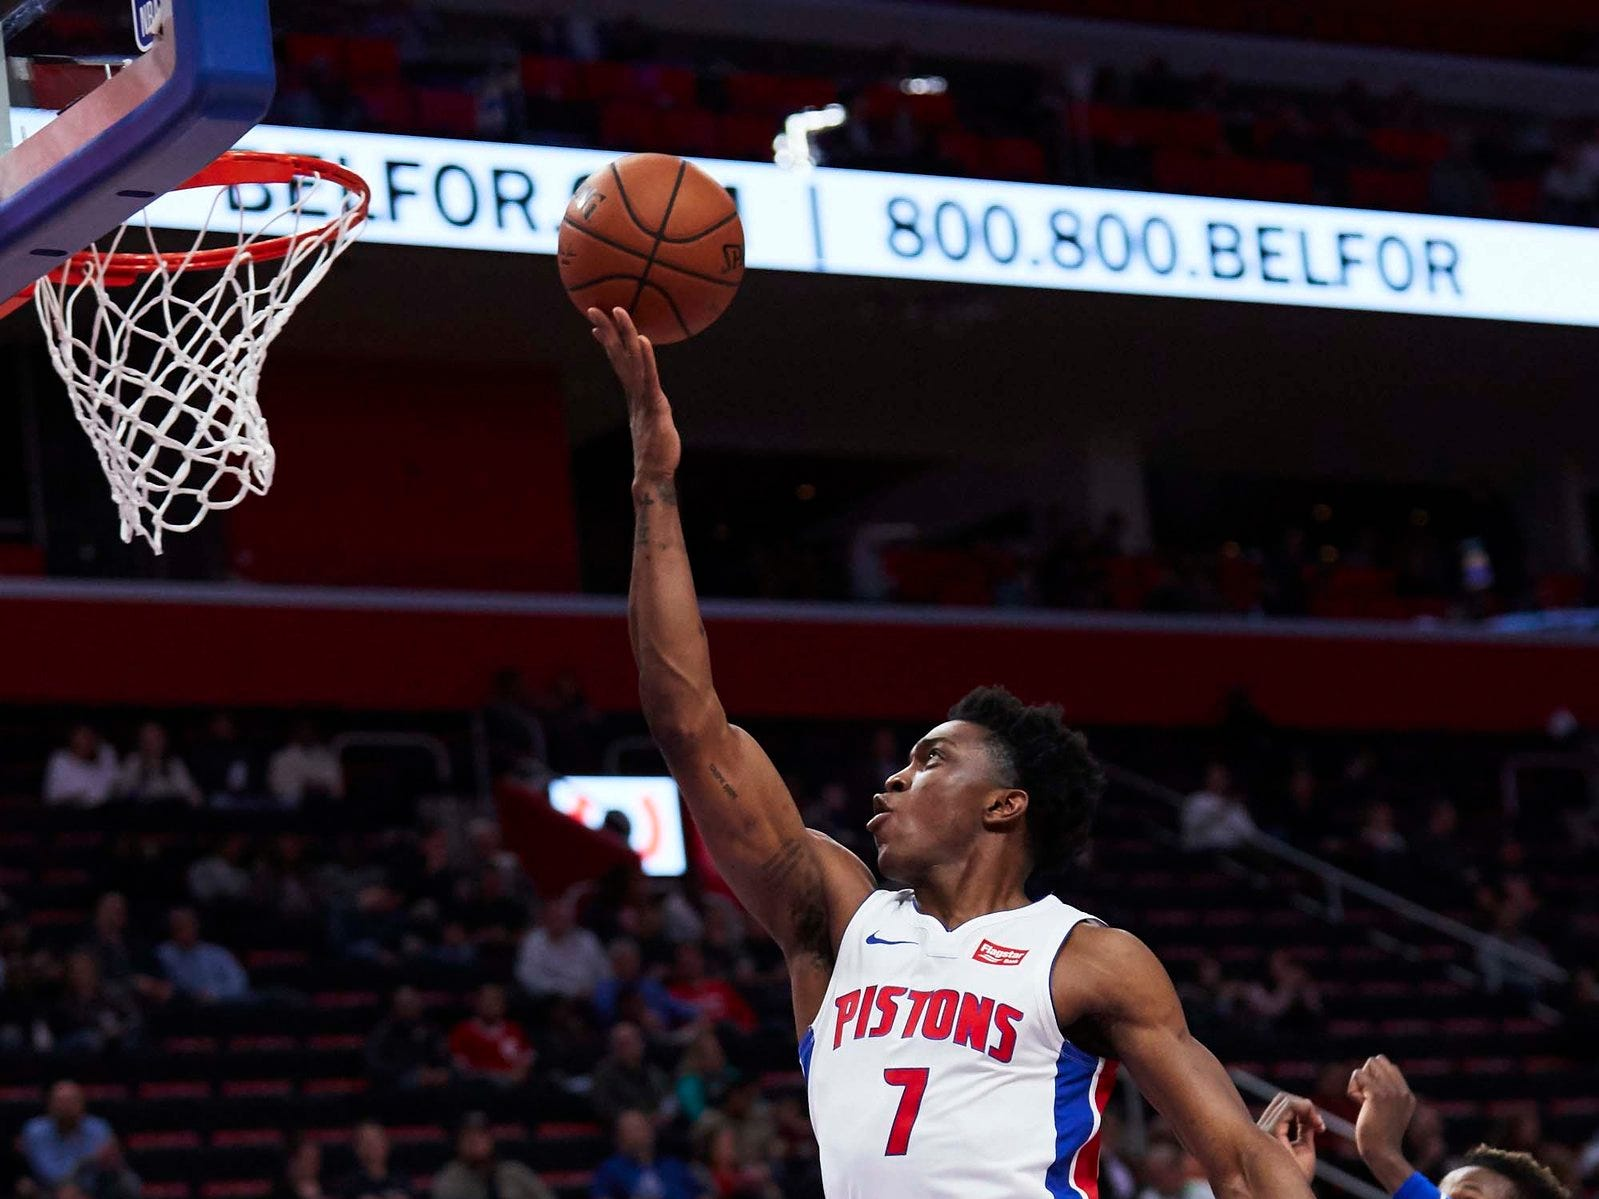 Detroit Pistons forward Stanley Johnson (7) goes to the basket in the first half against the New York Knicks at Little Caesars Arena.